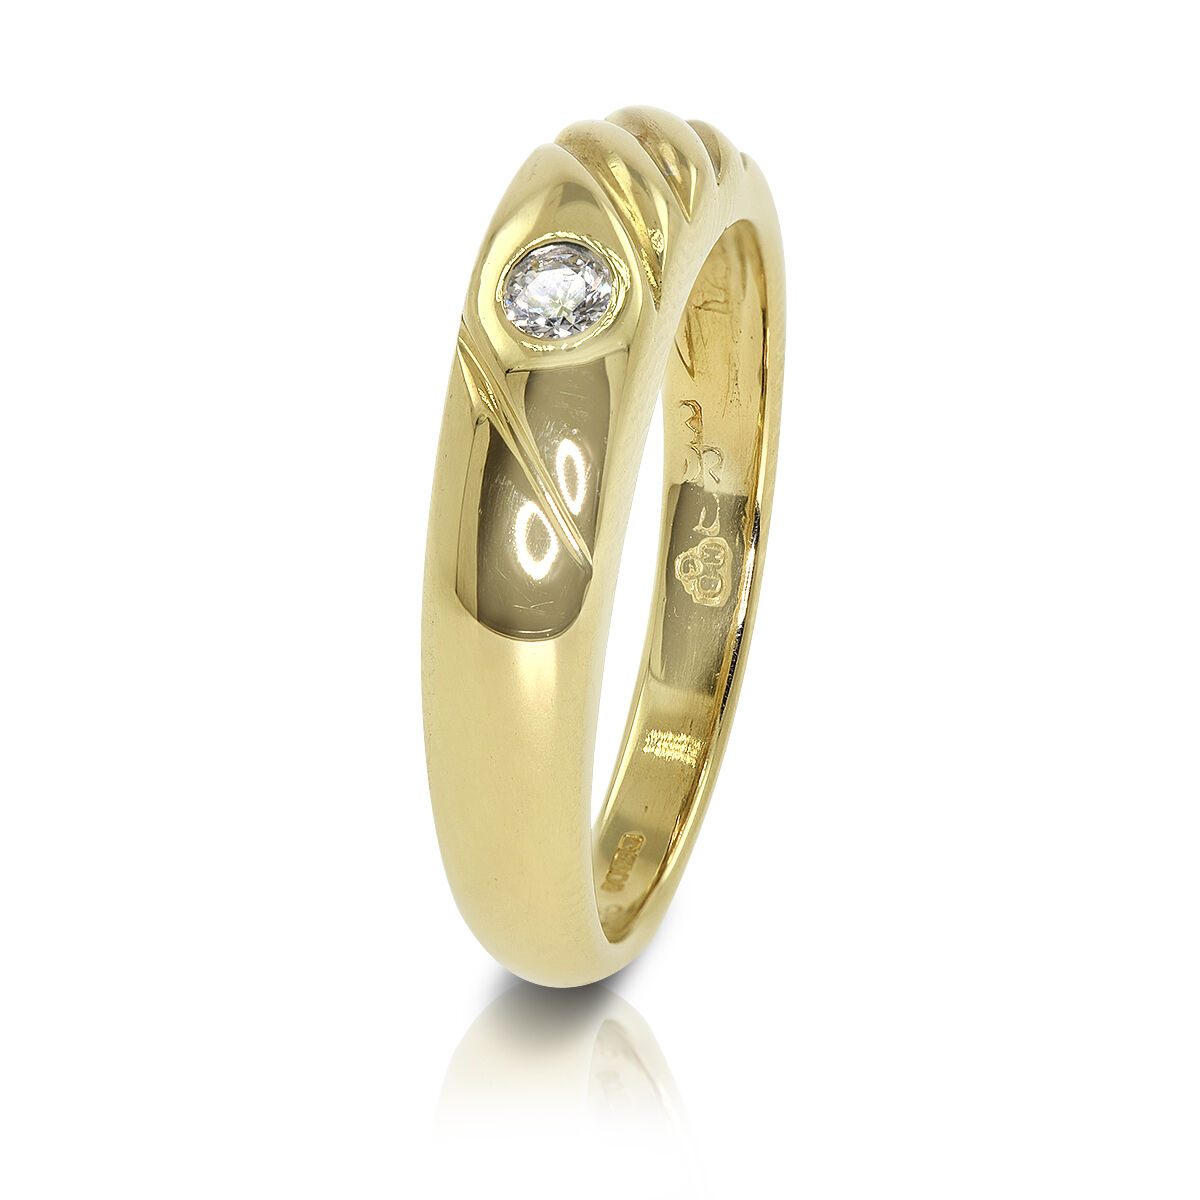 18 CT Yellow gold Diamond Solitaire Engagement Wedding Ring - Size L  (00396)